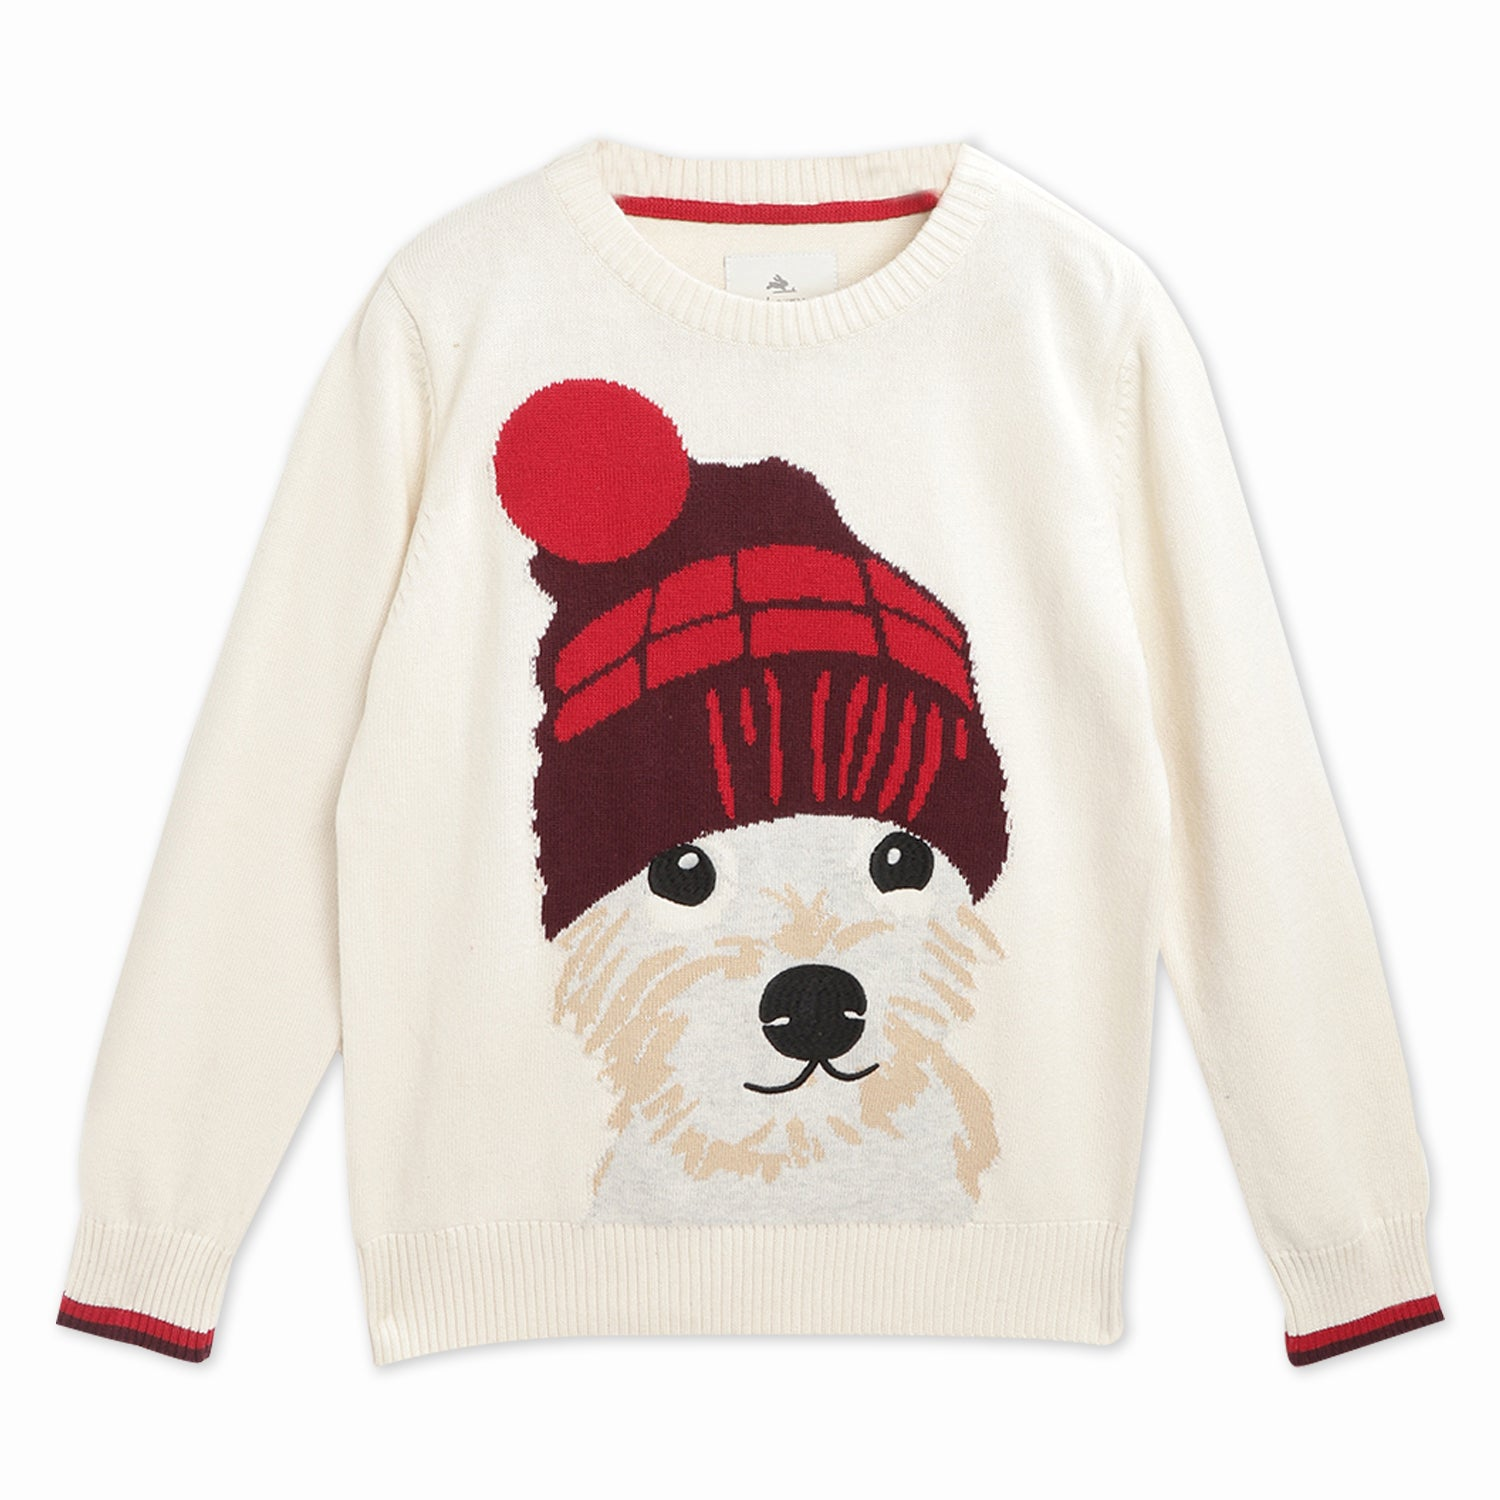 dog-knitted-sweater-ws-iswtr-5520cr